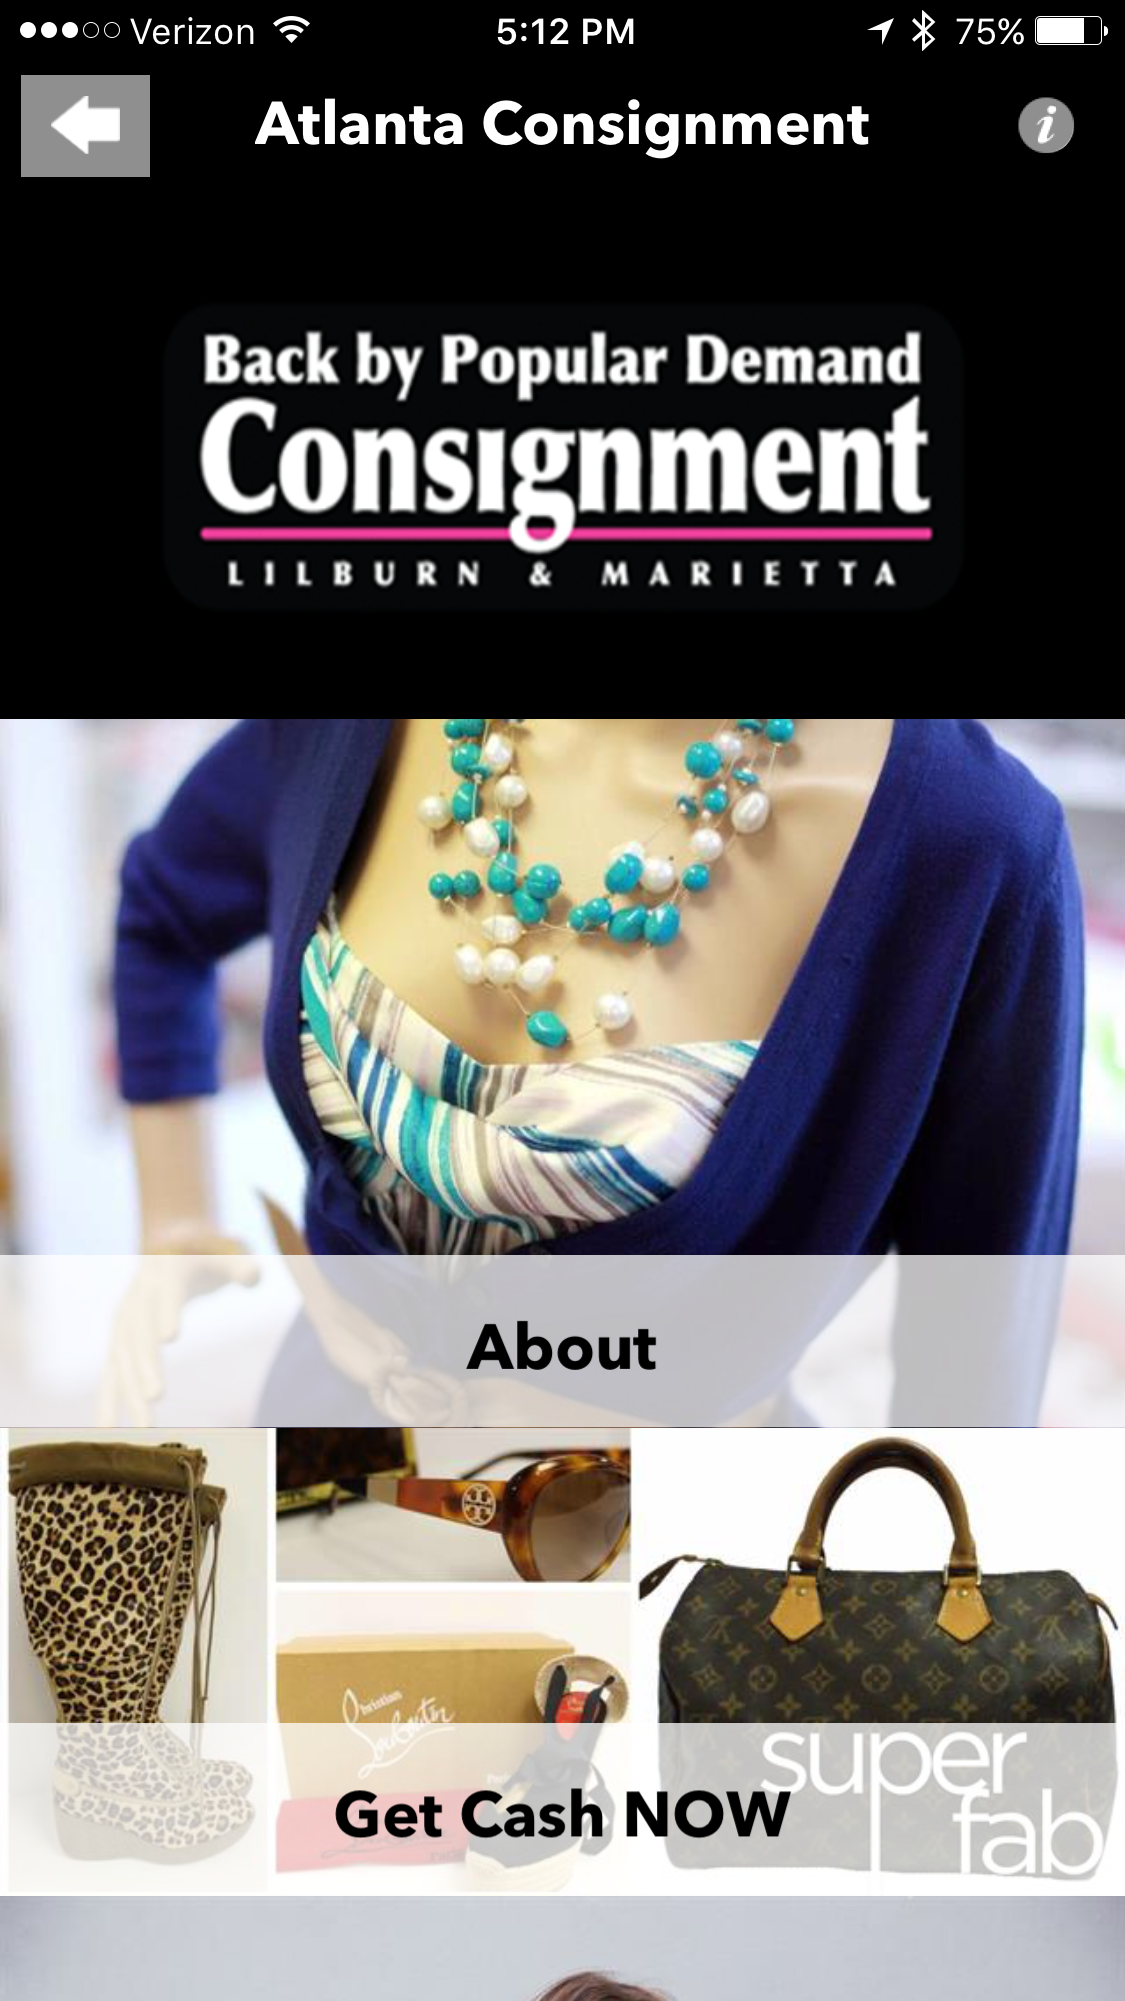 Back By Popular Demand Consignment Store Mobile App